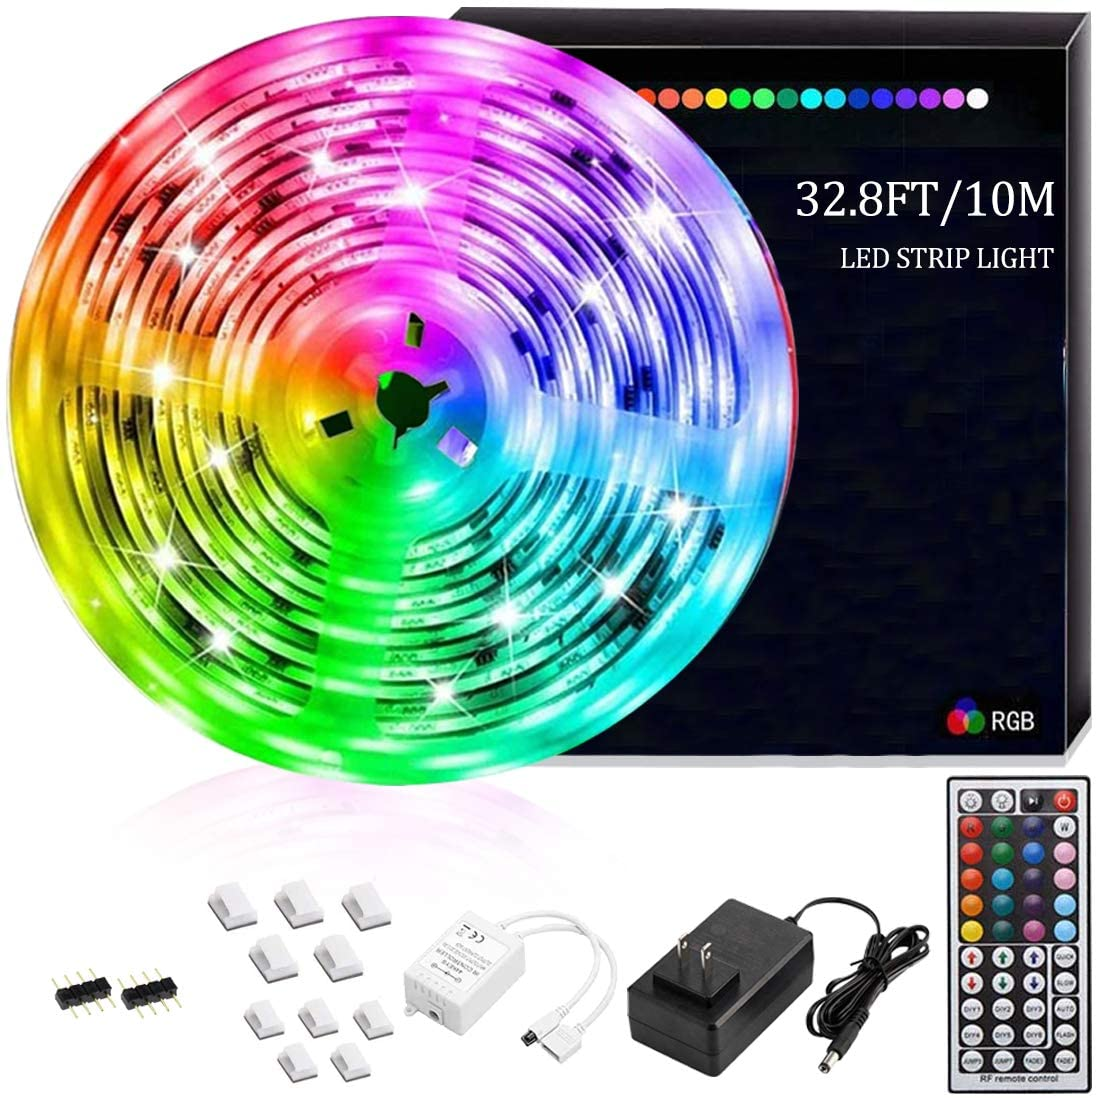 Ajaol Led Strip Lights Kit 32.8Ft/10M 5050 RGB SMD LED Band Light, with Power Supply and 44Key IR Controller, LED Flexible Lights for Bedroom, Home, Sitting Room, Kitchen and Under Cabinet Decoration